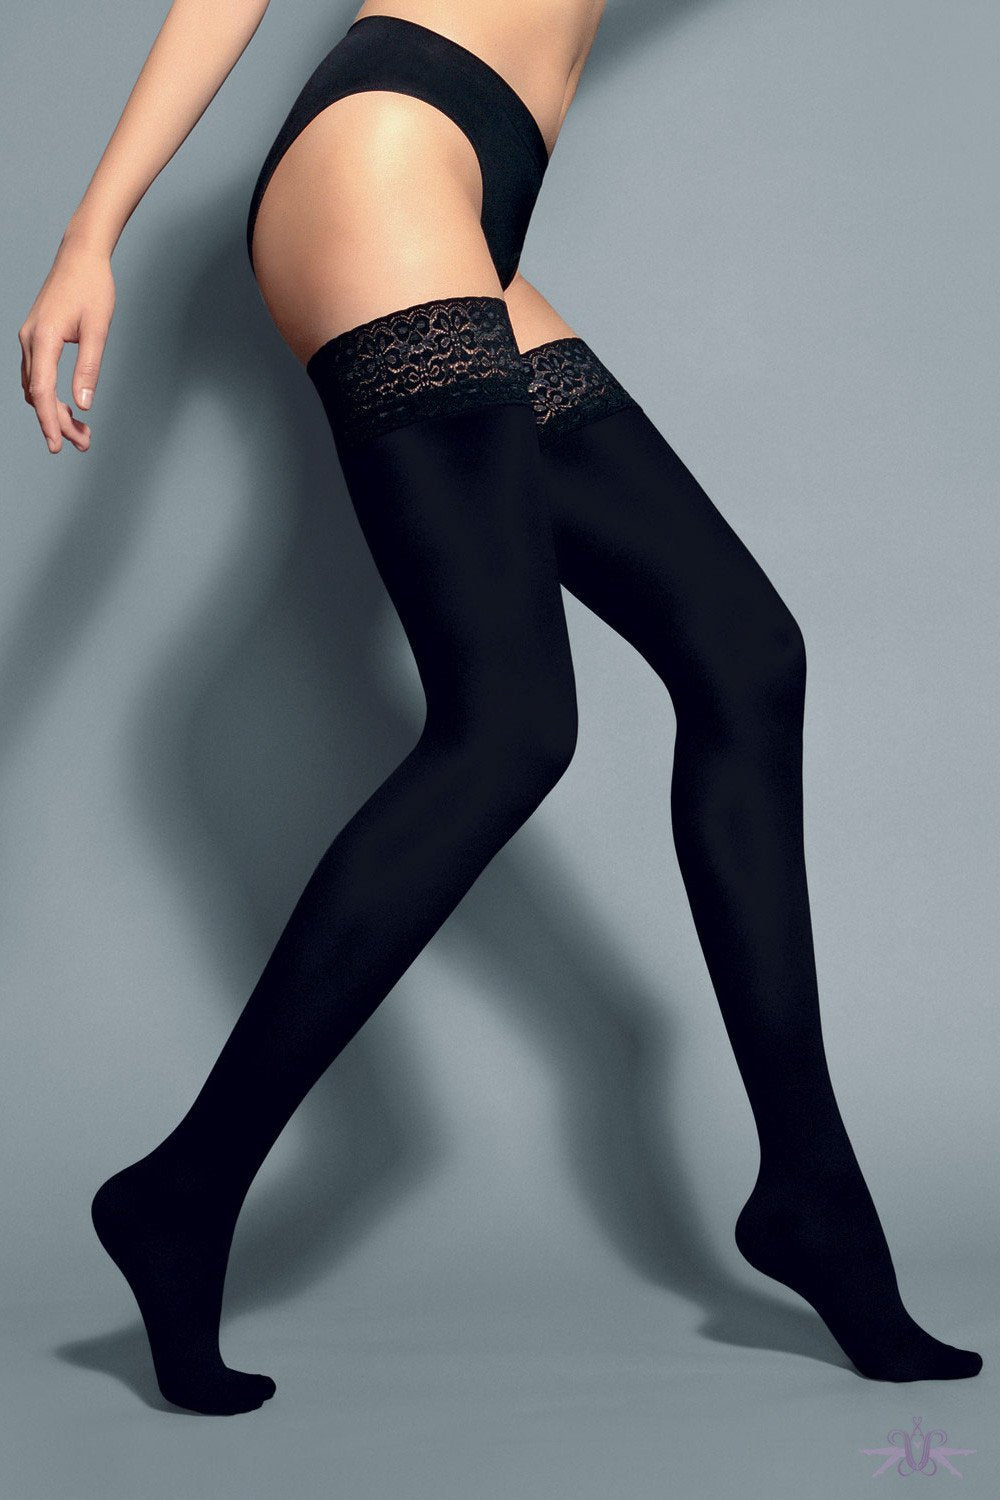 Veneziana Fiona 60 Opaque Hold Ups - The Hosiery Box